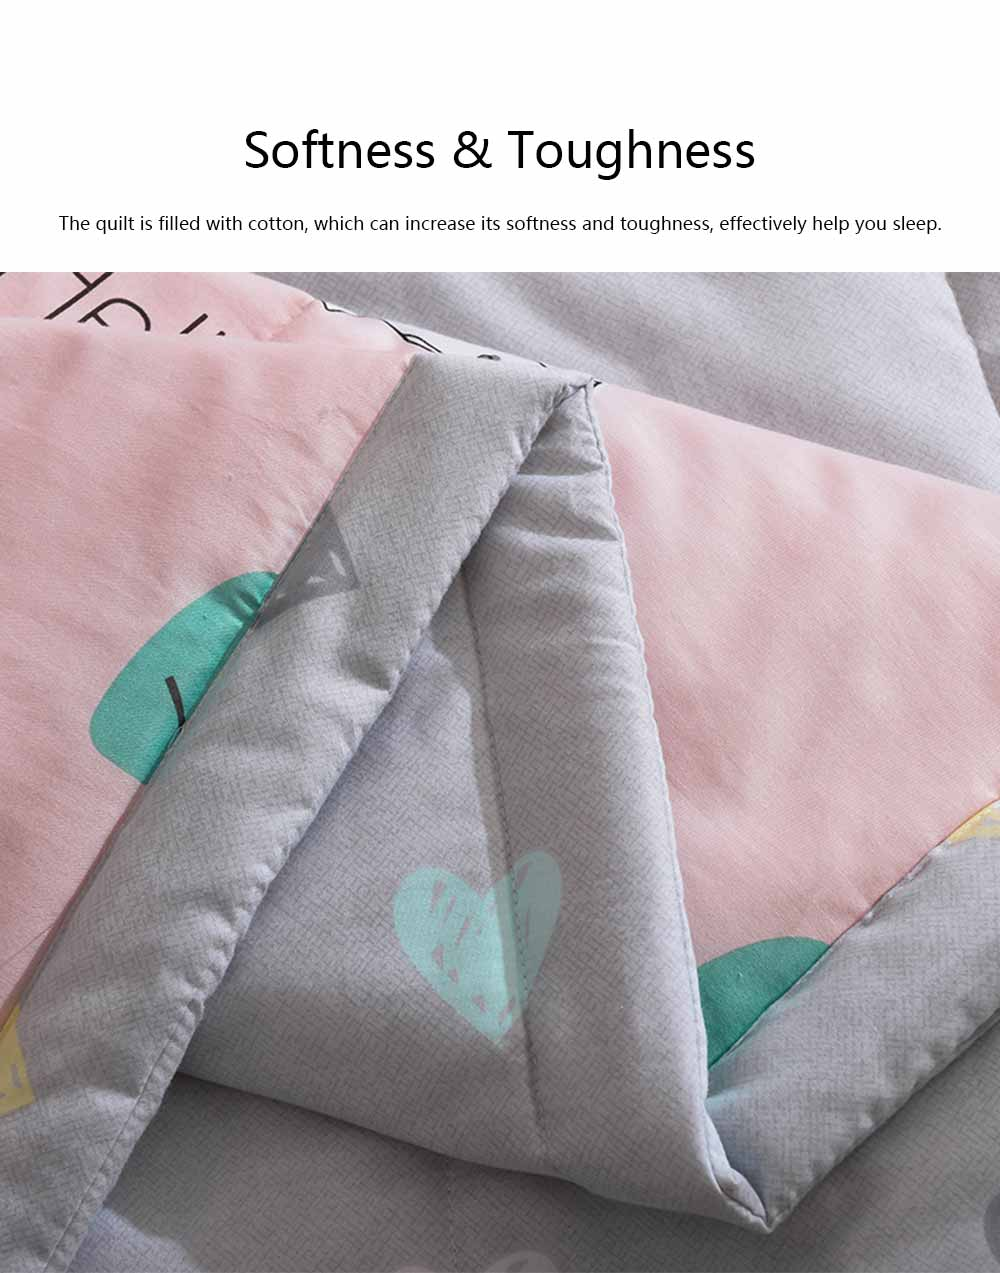 2019 Summer Quilt, Cotton Material Soft Environment Comforter Washing Machine Available, Softness Summer Refreshing Bedspreads 2